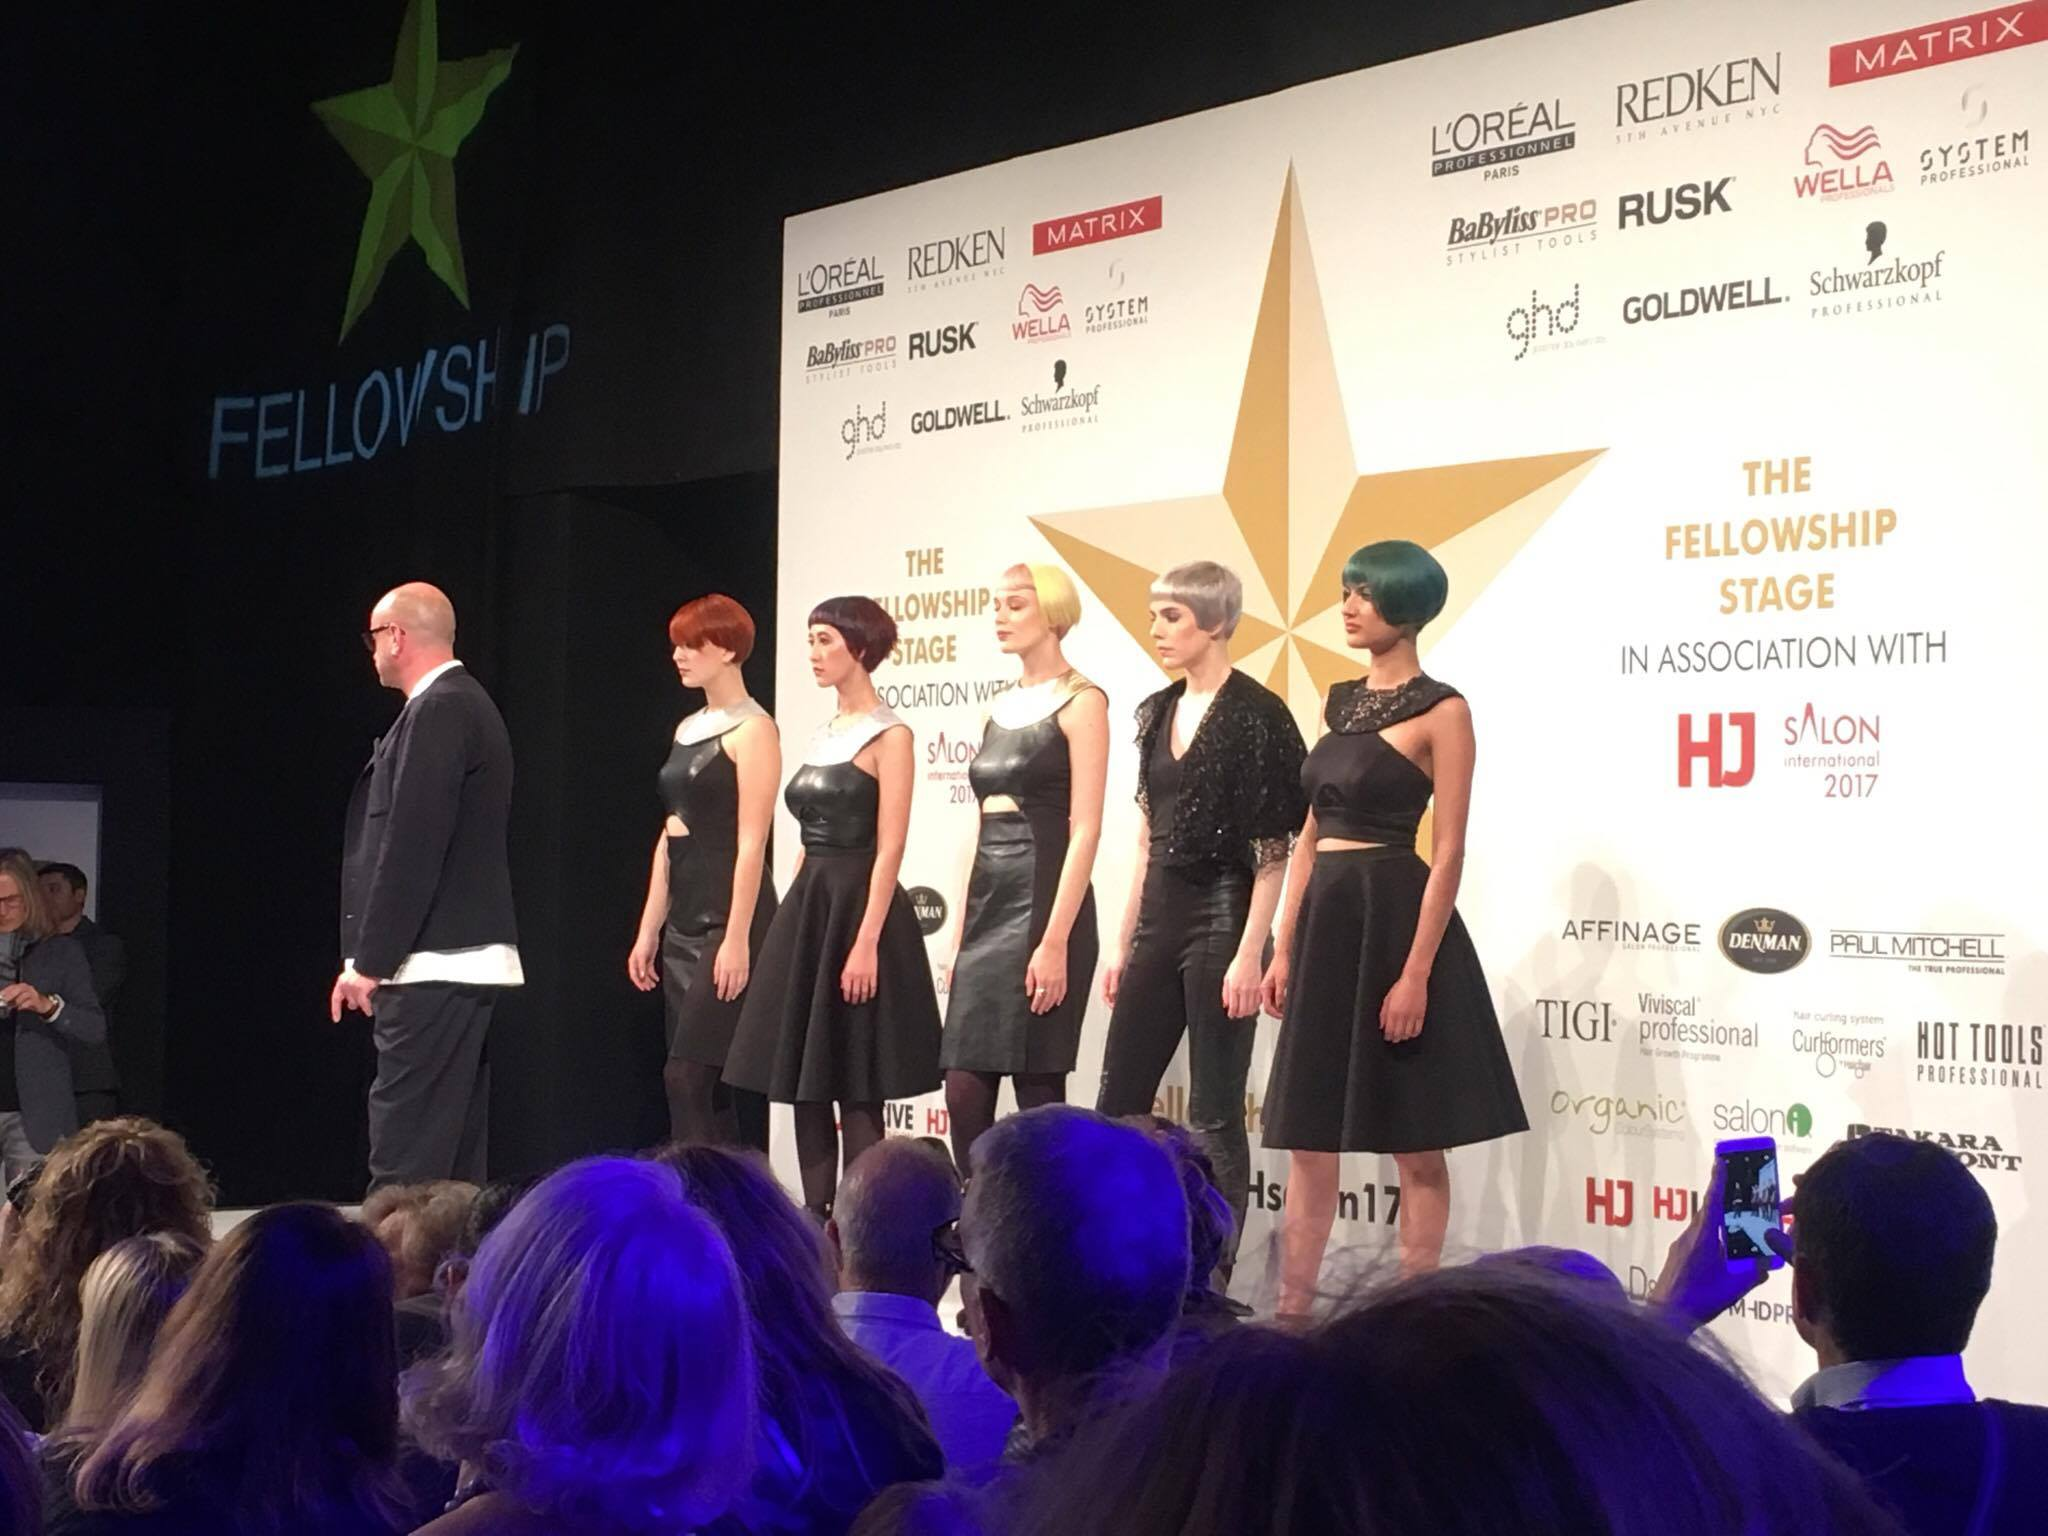 Salon International London – where your hairdressers get inspired